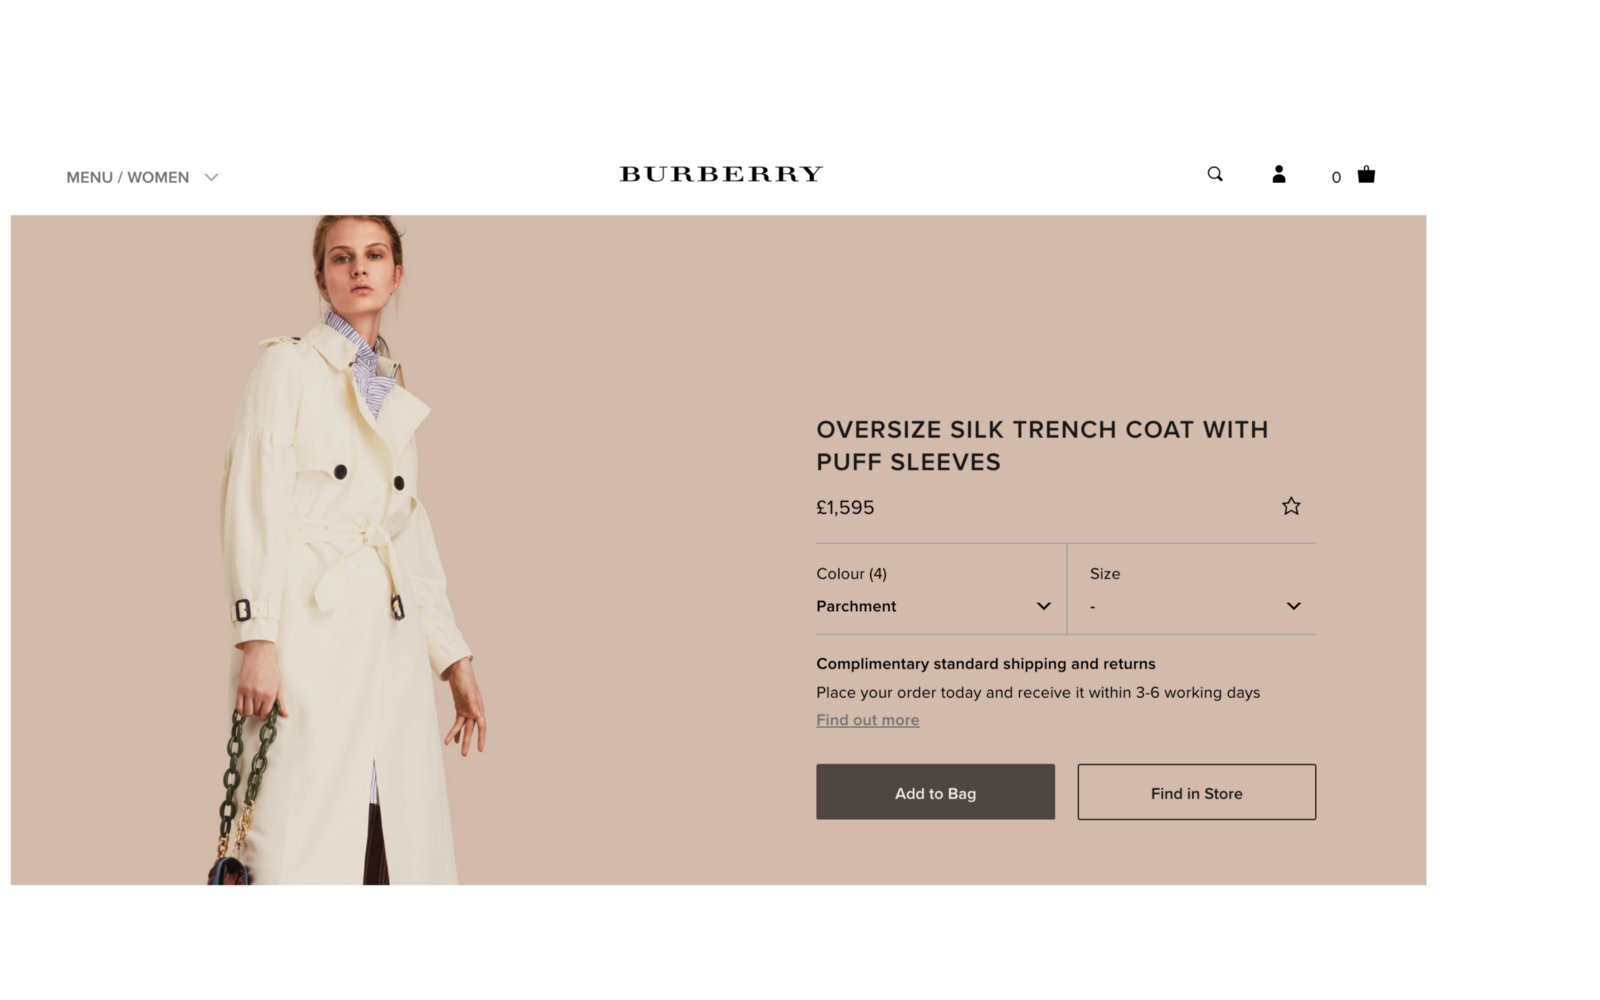 c8284800913 Have a closer look here — https://uk.burberry.com/oversize-silk-trench-coat -with-puff-sleeves-p40422641